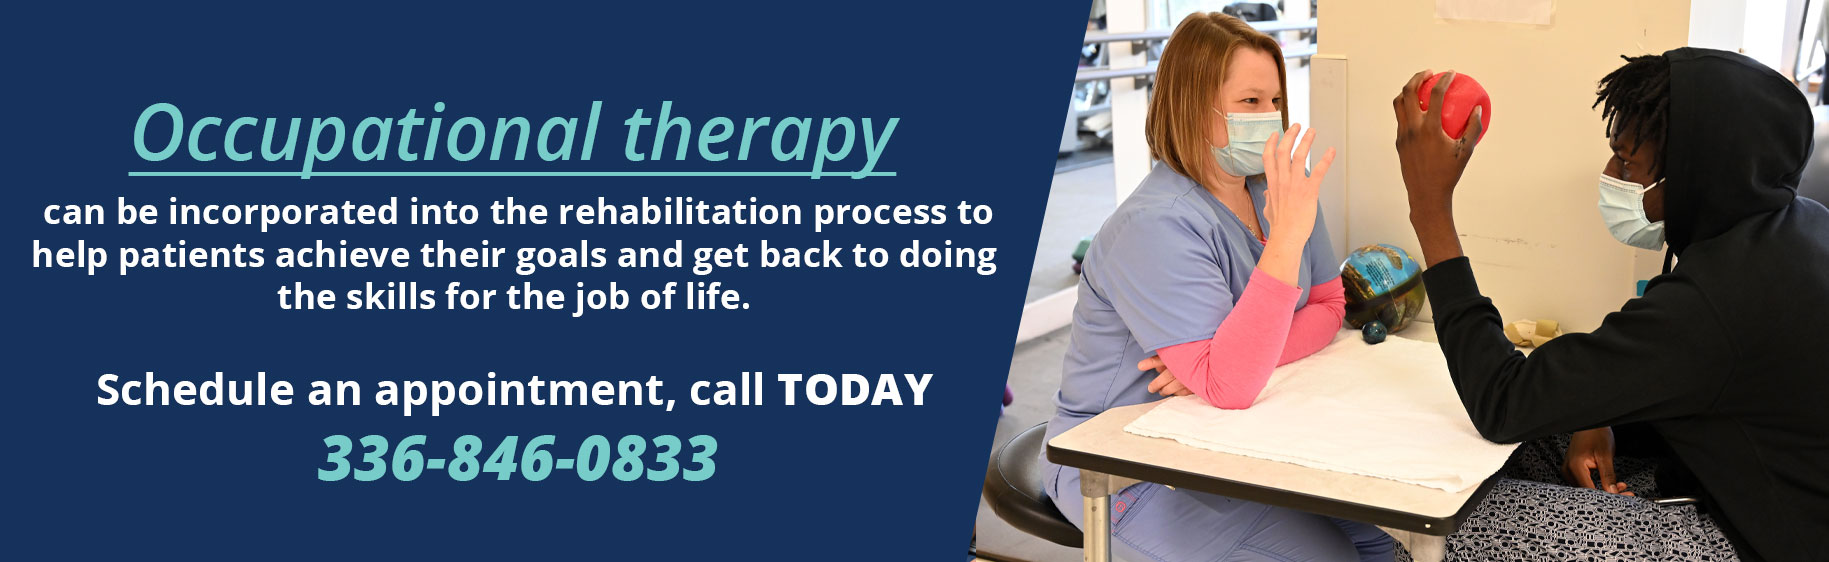 Occupational therapy can be incorporated into the rehabilitation process to help patients achieve their goals and get back to doing the skills for the job of life. . For more information or to schedule an appointment, call Ashe Memorial Hospital's Rehabilitation Services department at 336-846-0833.